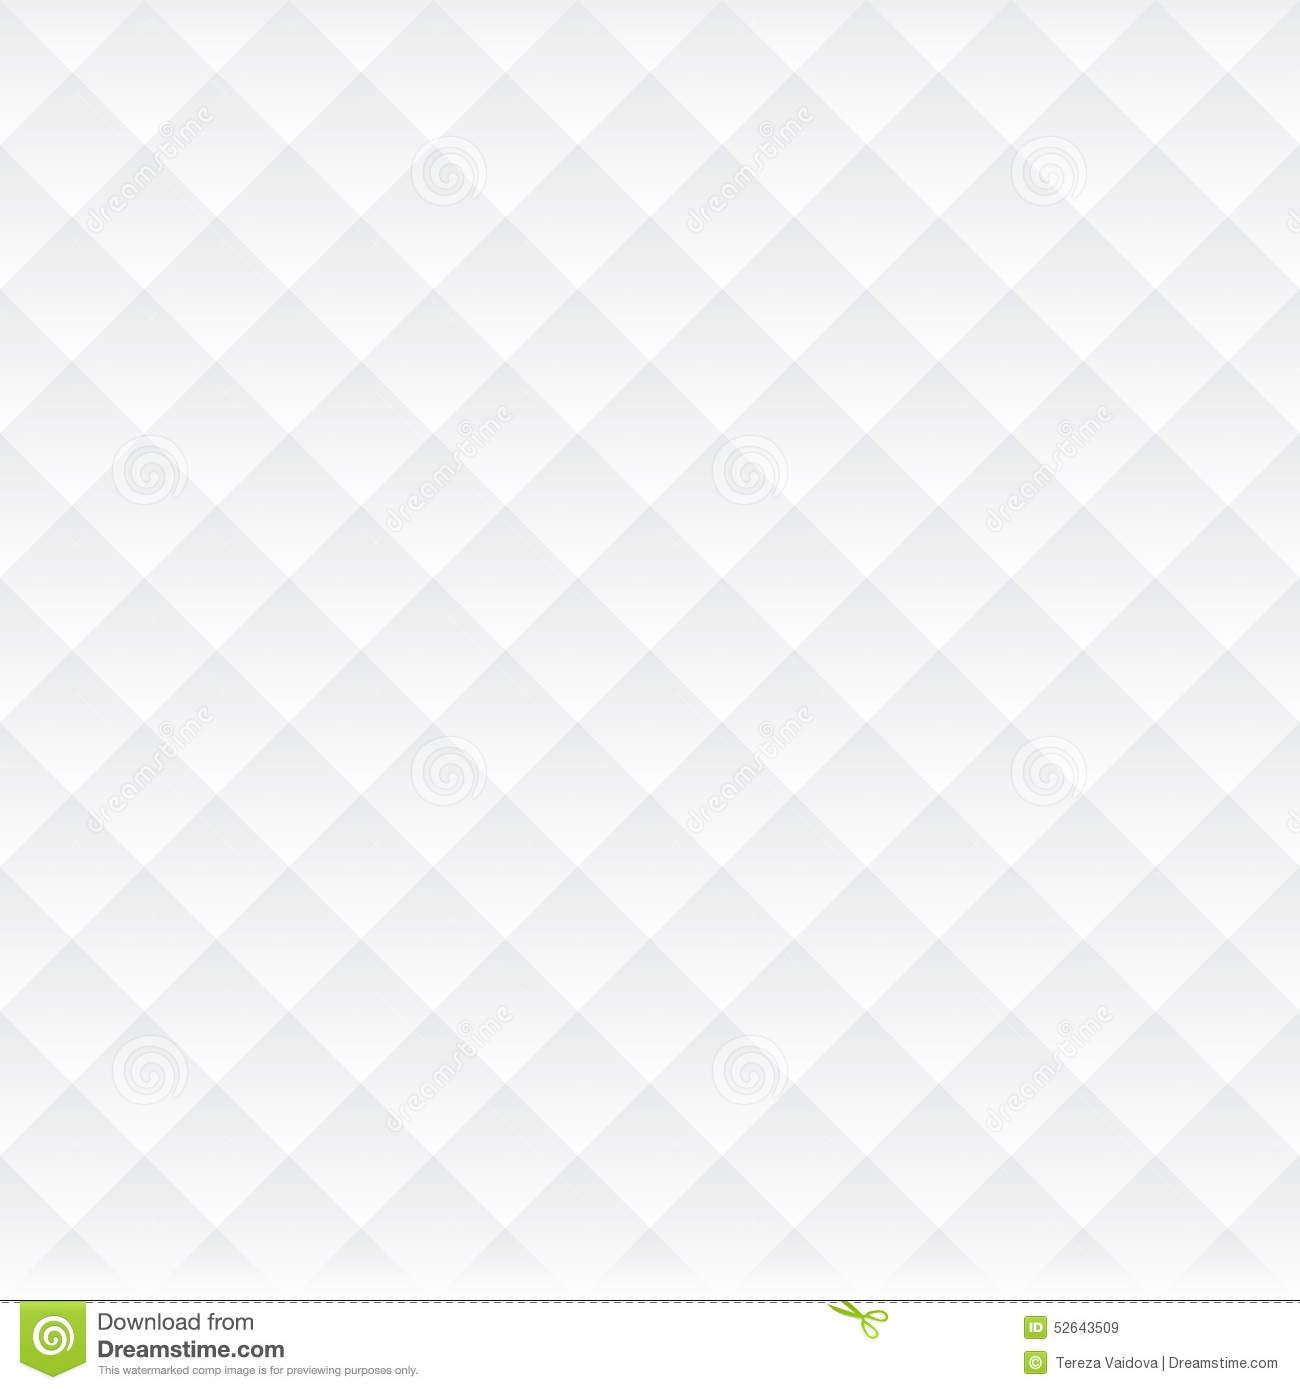 Abstract Seamless Light Checkered Cube Luxury Pattern Background